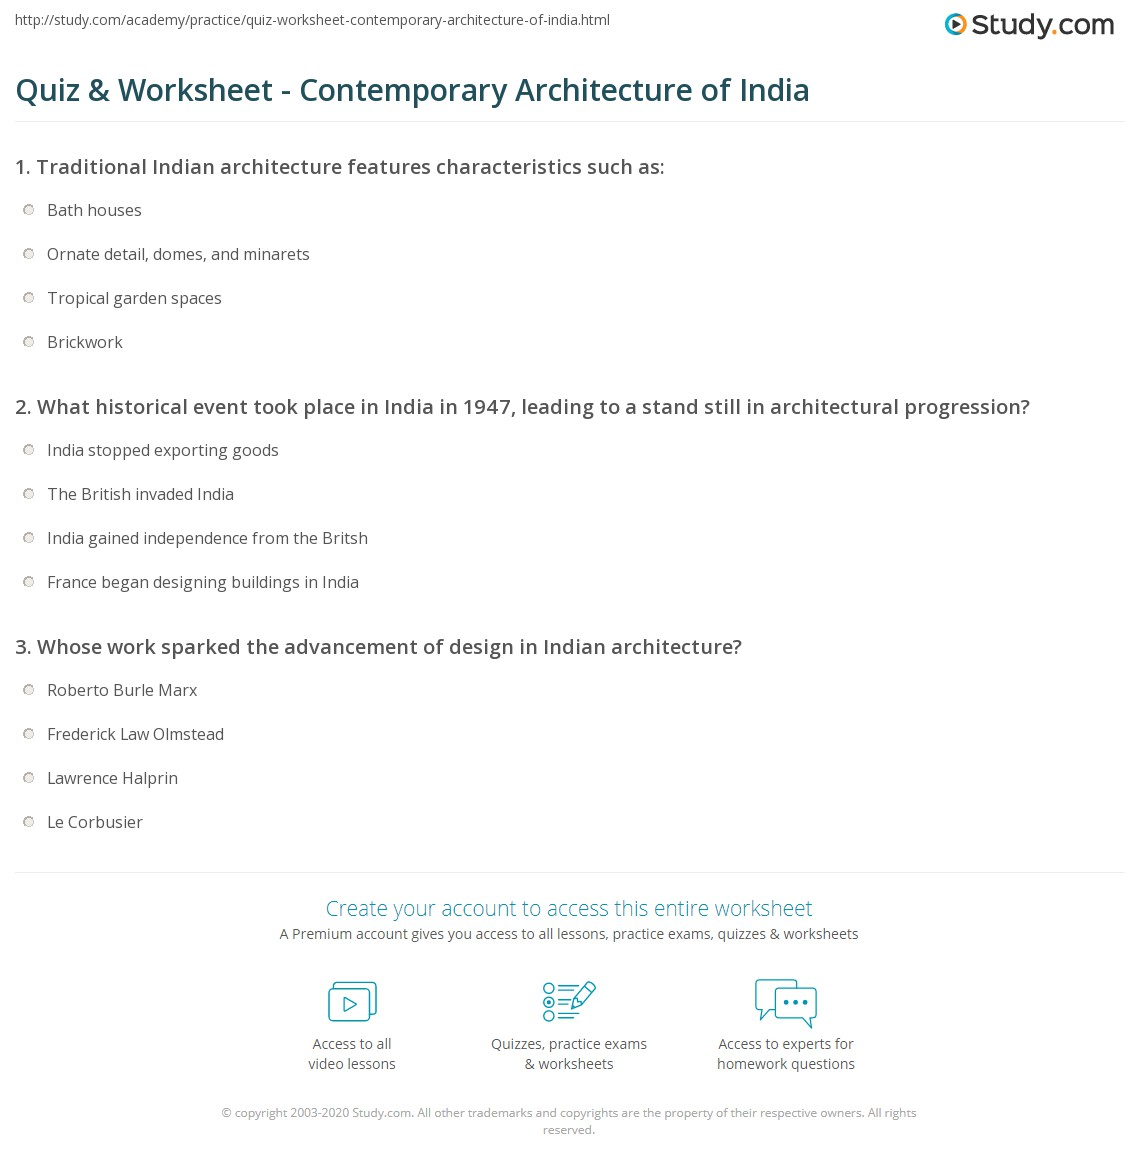 Quiz & Worksheet - Contemporary Architecture of India | Study.com